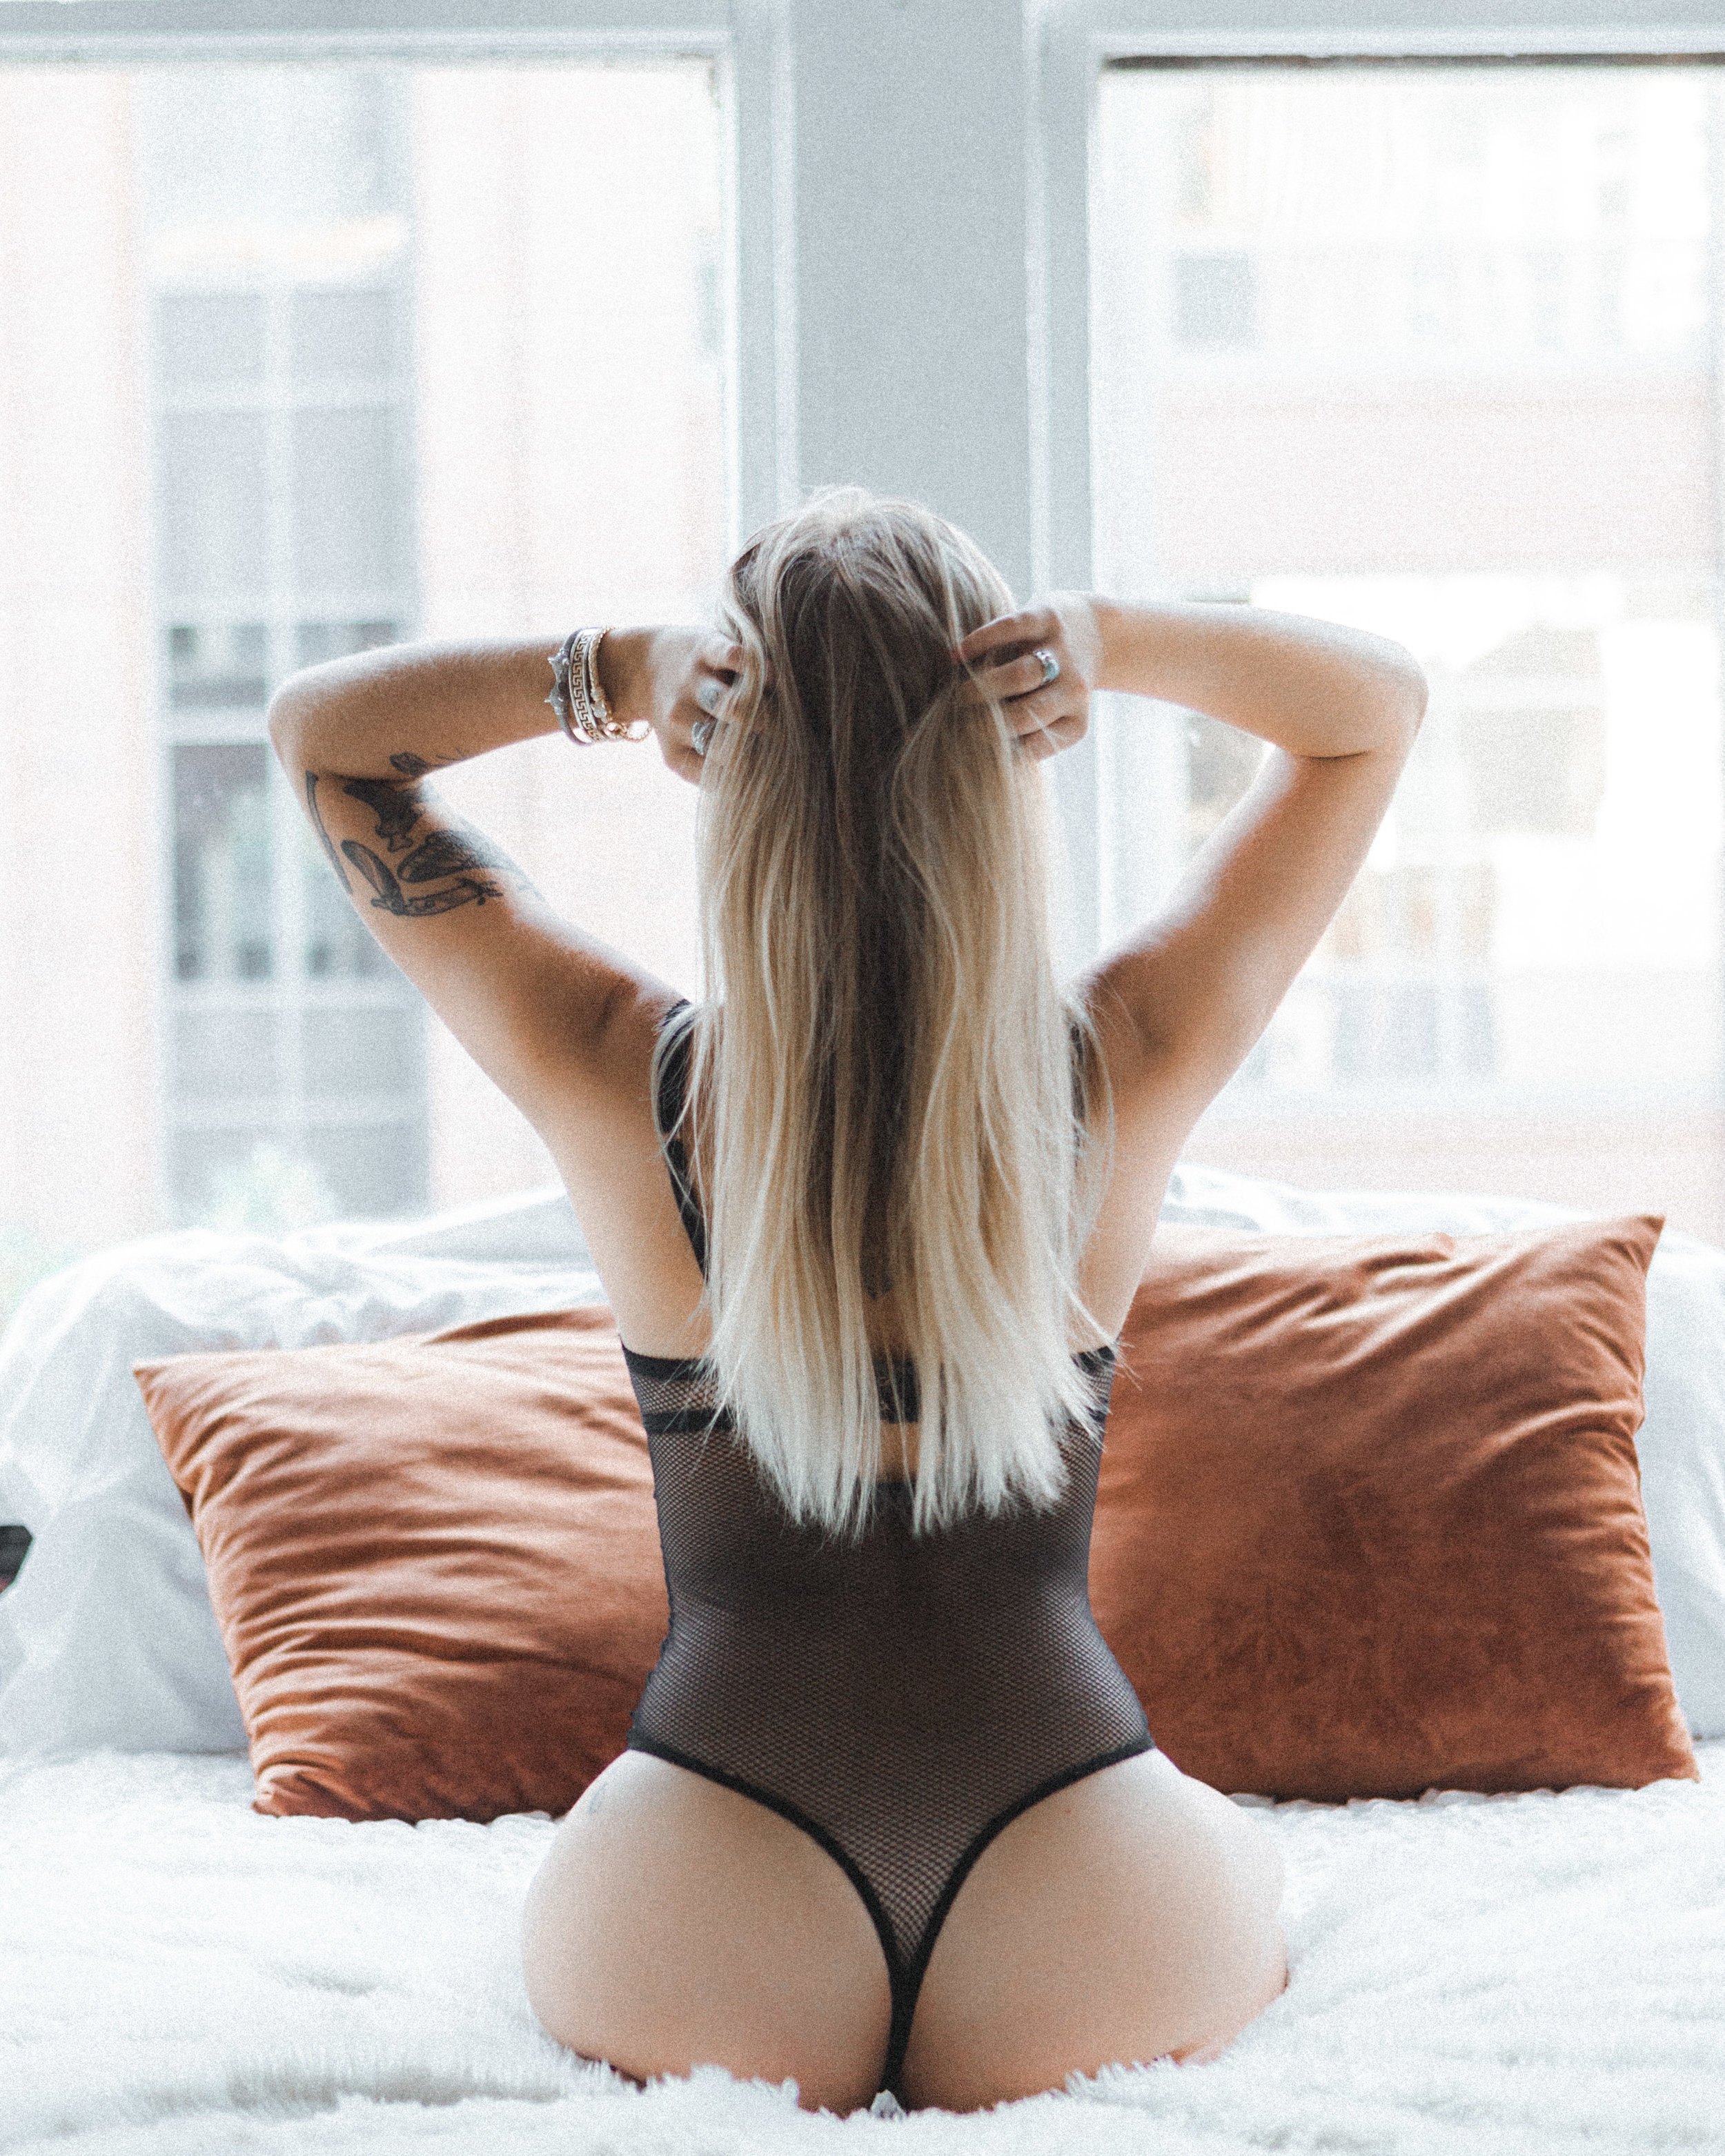 Why boudoir? - Boudoir photography creates self love and empowerment that wasn't there before. It allows a person to be free and confident in their own skin. It makes a person who stopped loving their self love themself even more than before.